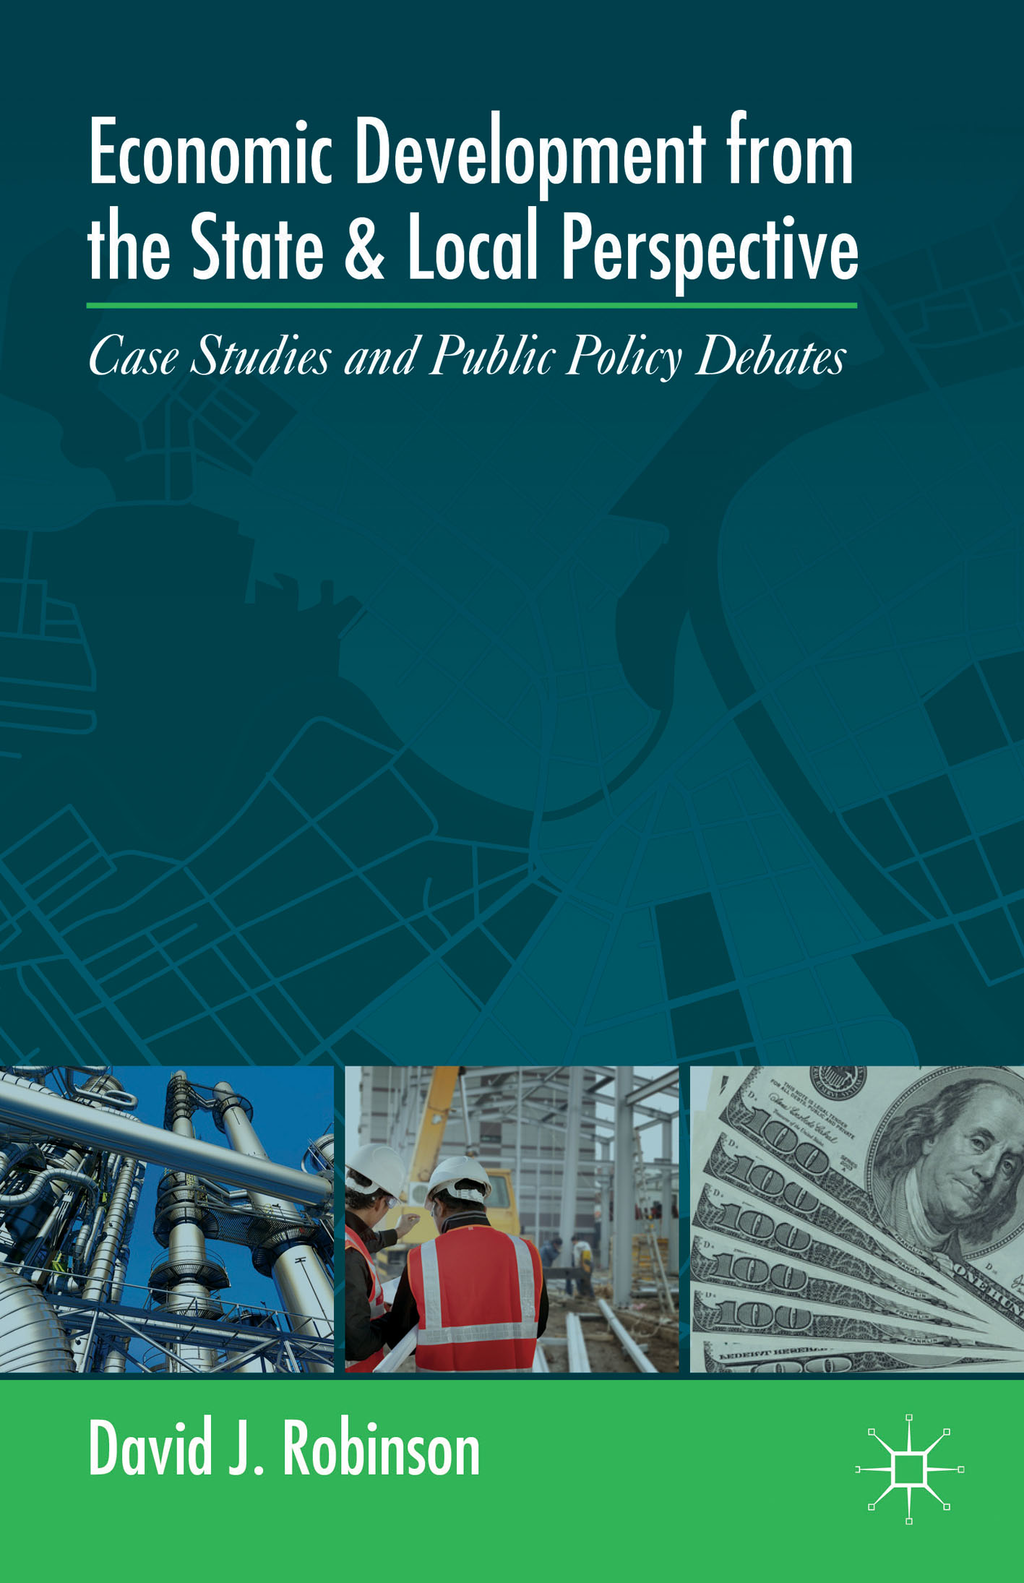 Economic Development from the State and Local Perspective Case Studies and Public Policy Debates